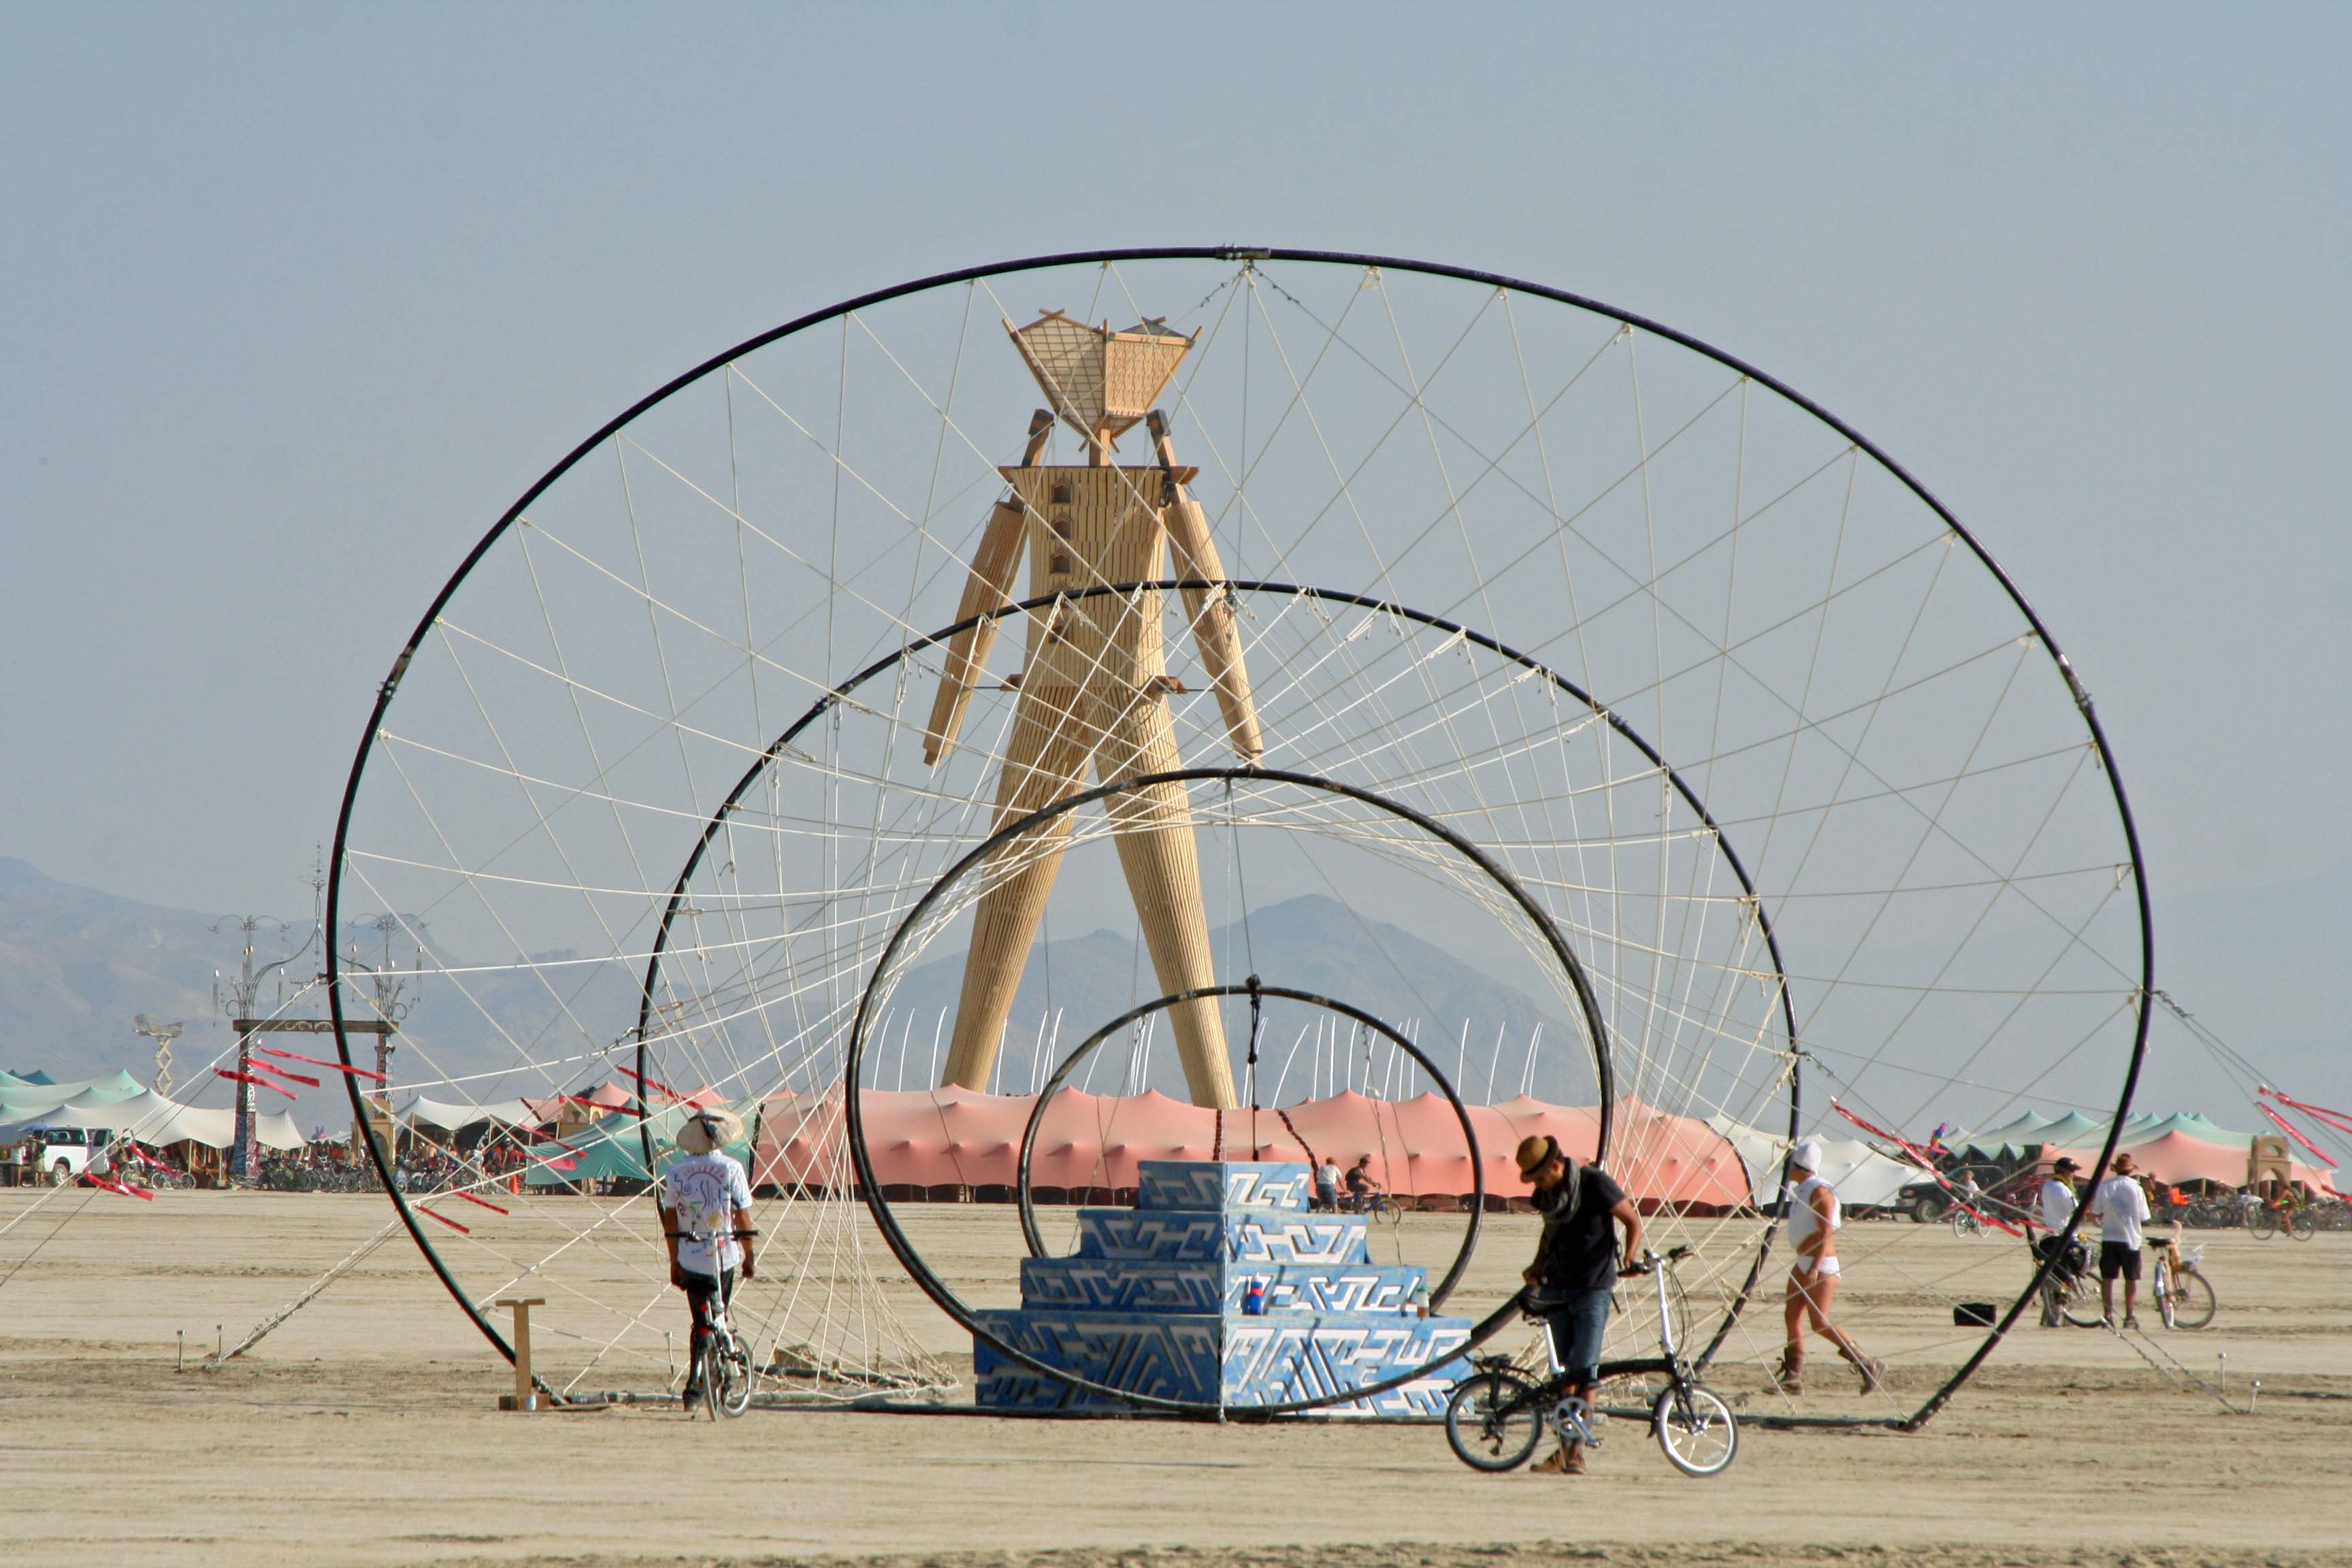 Geometric Sculpture and Man at Burning Man 2014. Photo by Curtis Mekemson.